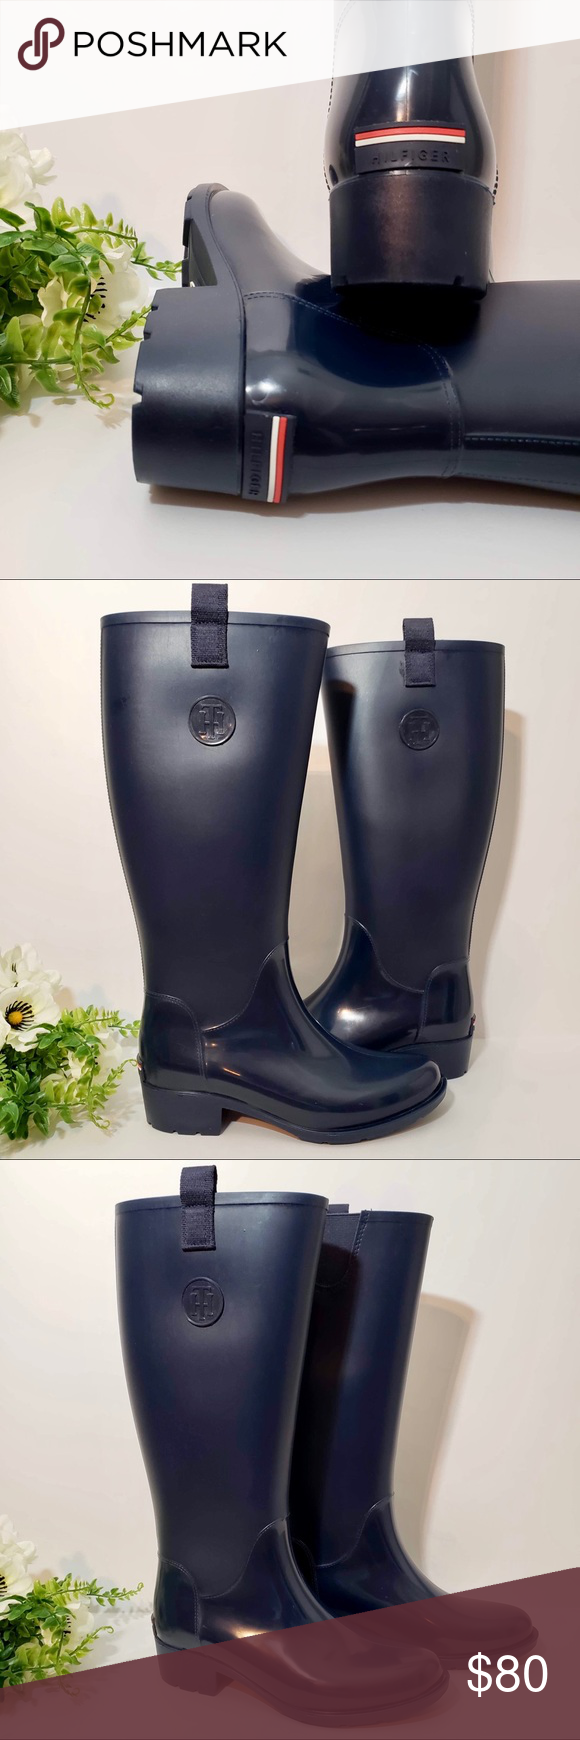 Tommy Hilfiger Rain Boots Tommy Hilfiger rain boots. Cloudy skies are a  good enough excuse for you to slip on this pair. Our mixed material long  boot ... ca5afd2829